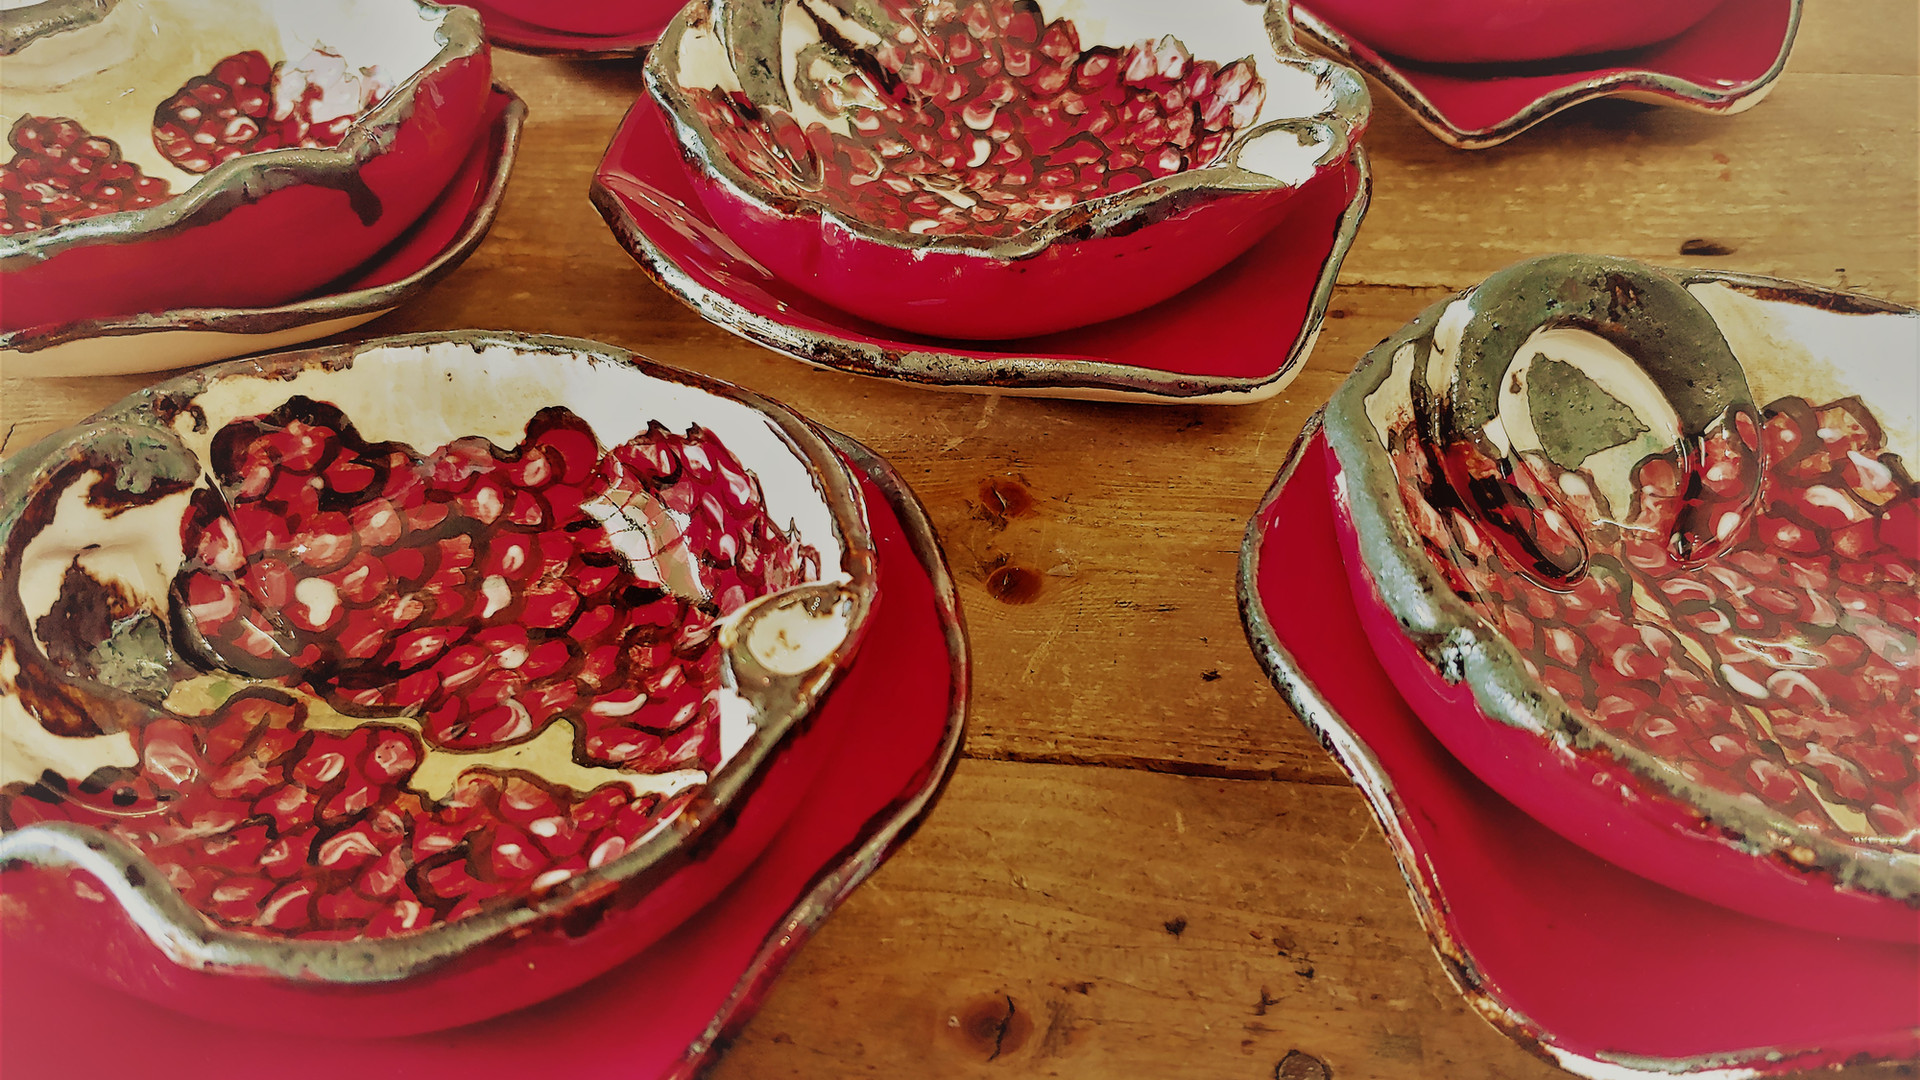 Pomegranate Bowls on litlle Red plates 0